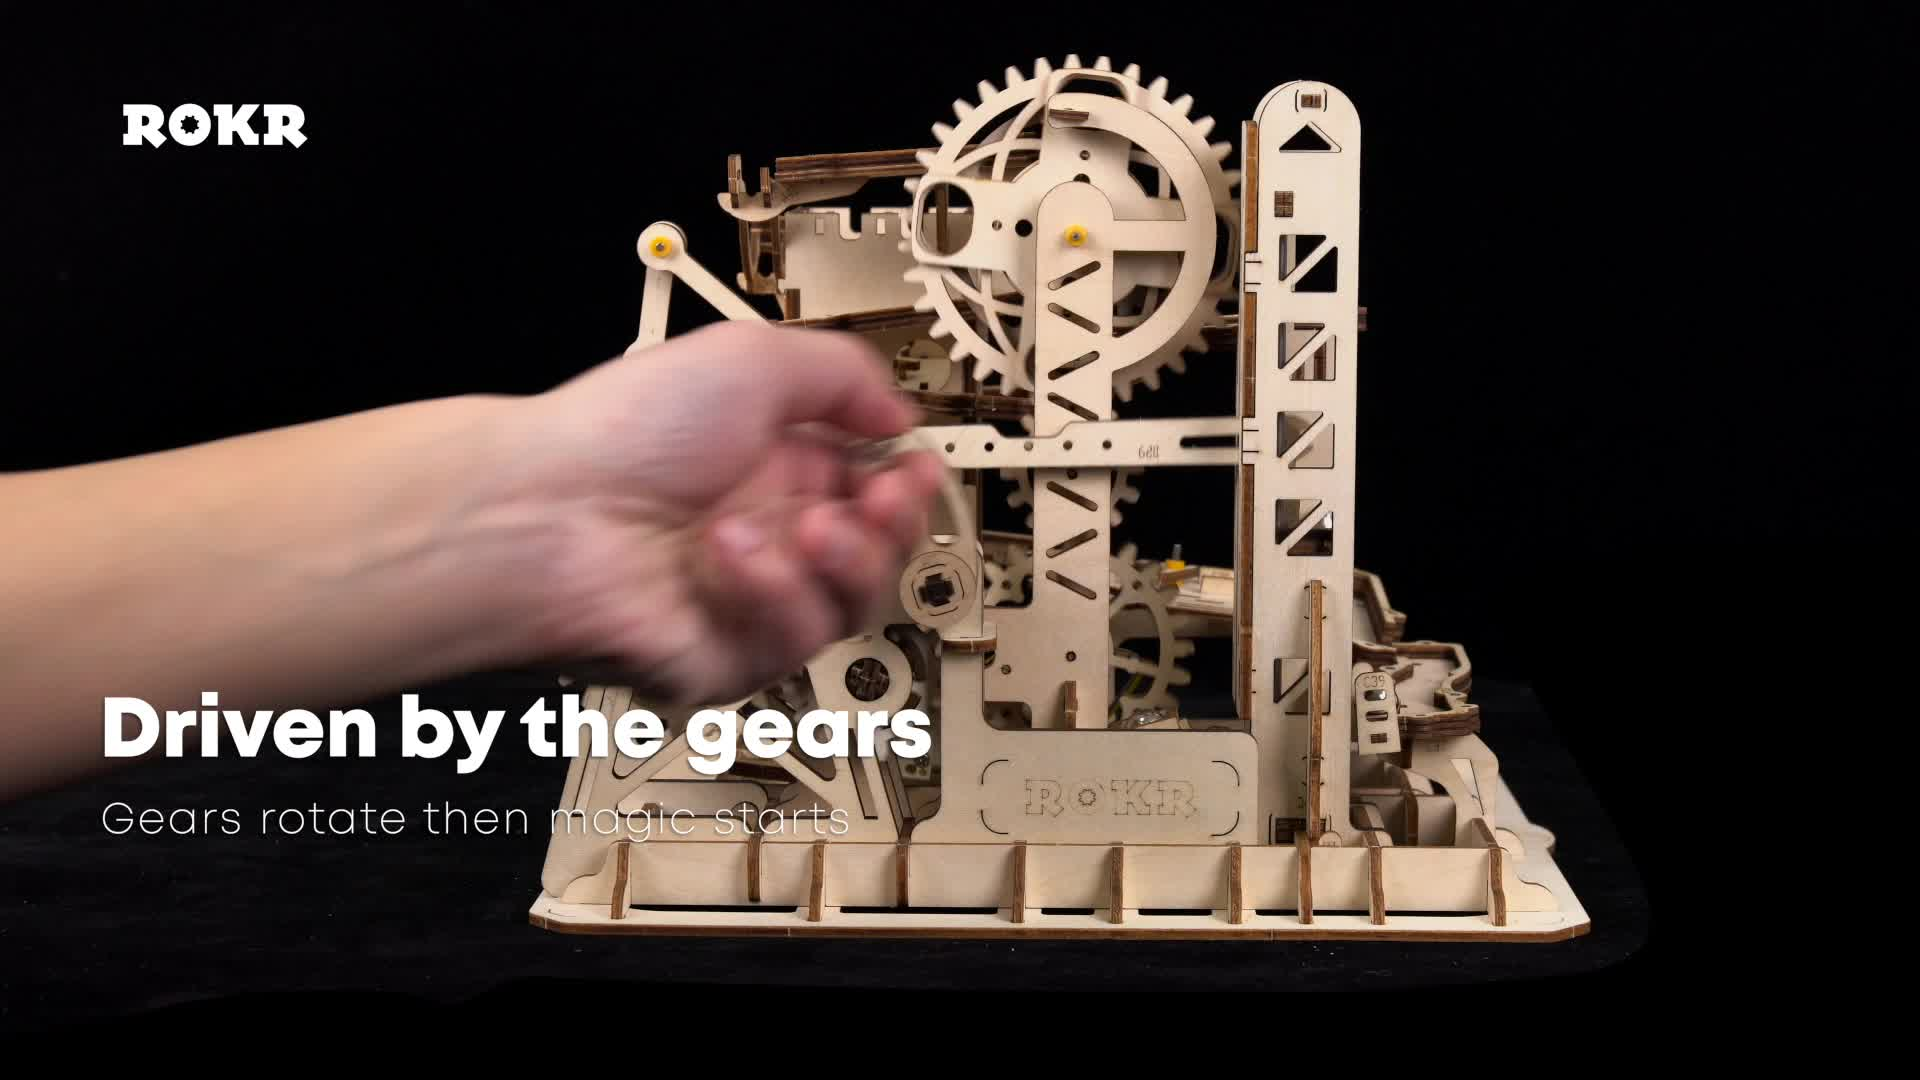 ROKR Mechanical Gears Tower Coaster Wooden 3D Puzzle Model